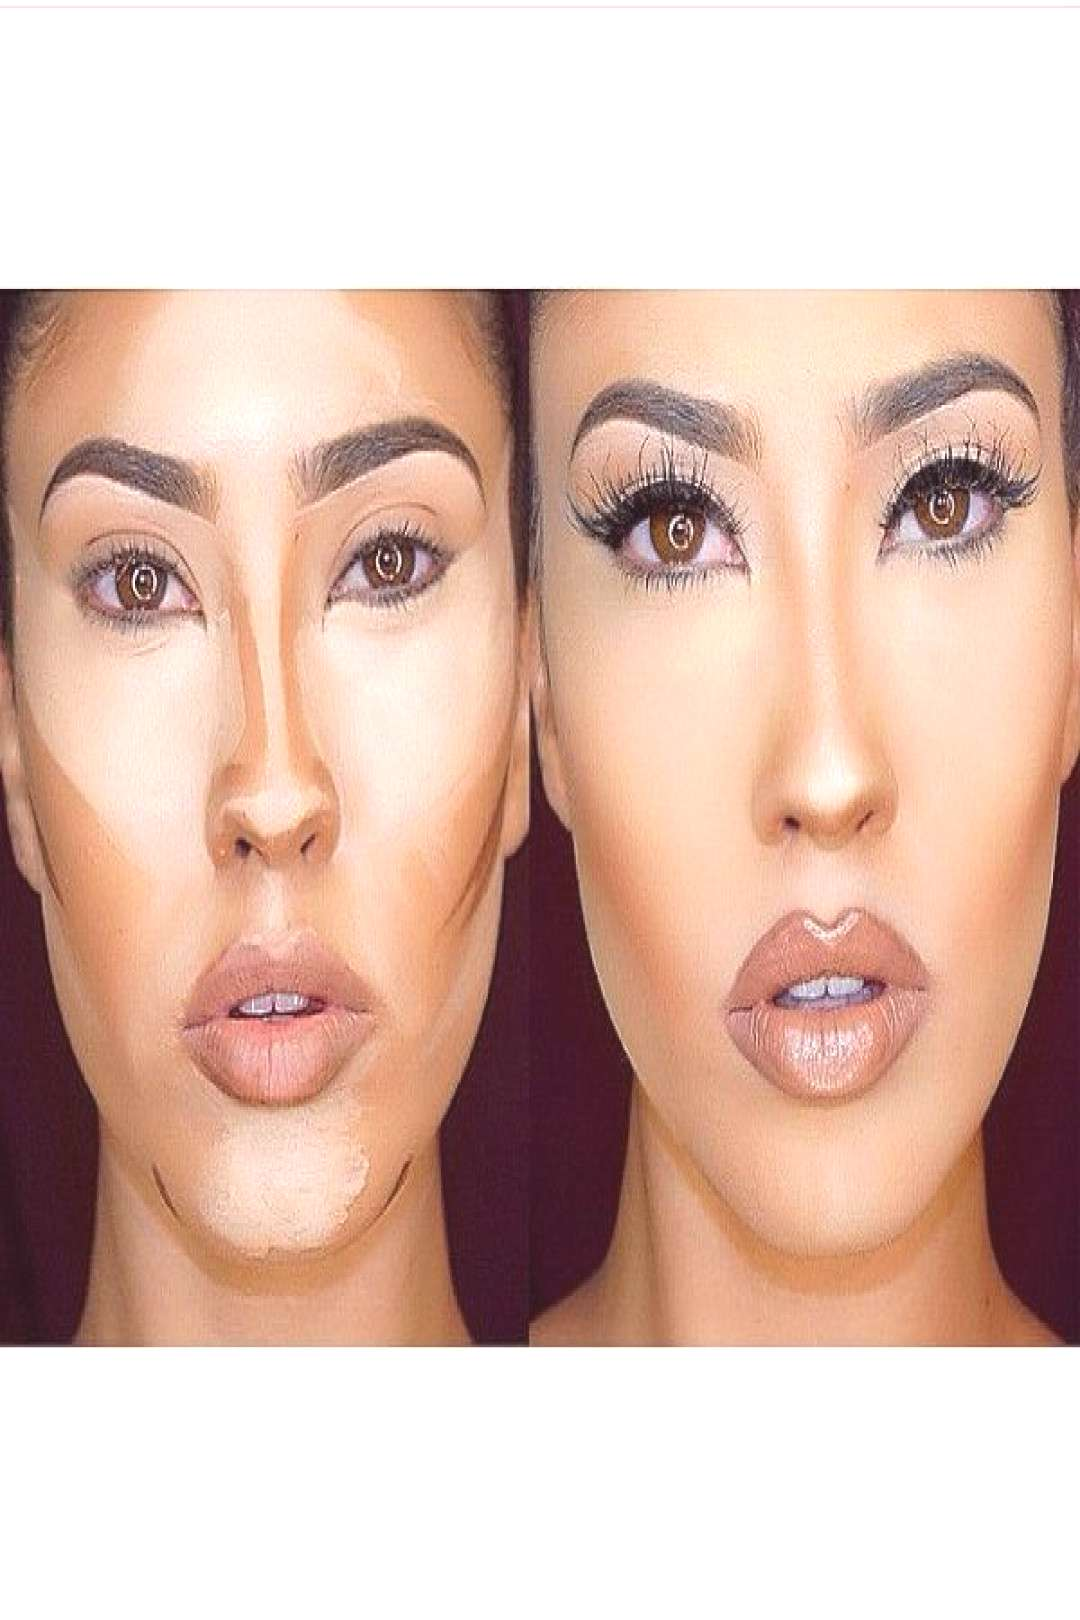 Contouring Your Nose - 11142924_852542391485691_213488037_n -